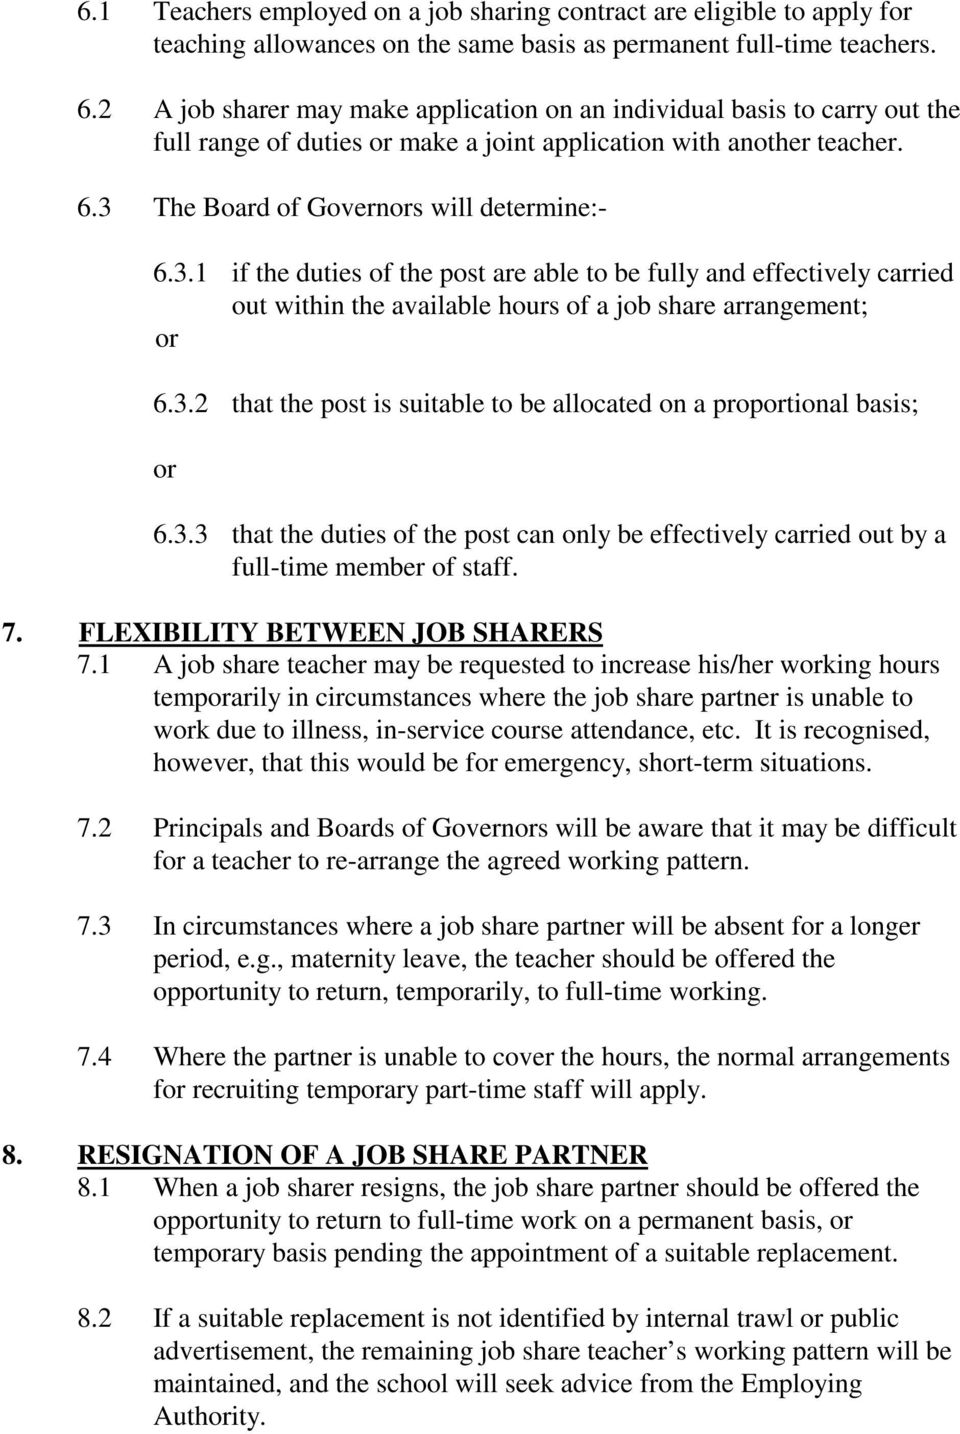 The Board of Governors will determine:- 6.3.1 if the duties of the post are able to be fully and effectively carried out within the available hours of a job share arrangement; or 6.3.2 that the post is suitable to be allocated on a proportional basis; or 6.